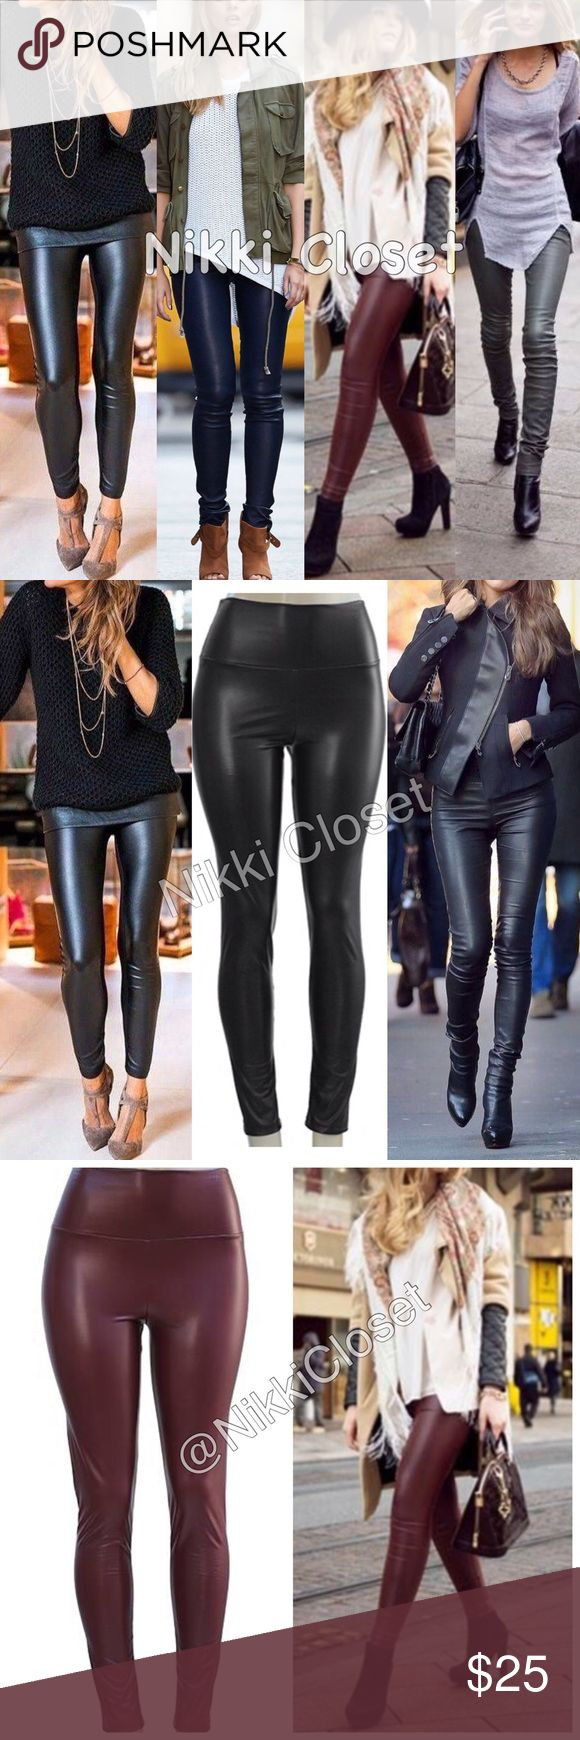 """New faux leather high waisted leather leggings Sexy Vegan Faux leather leggings. Perfect fit  High waist. Trendy. Medium weight. Lightly soft Fleece-lined. Super soft, Stretchy and comfortable. Fabric 65% Polyester,35% Cotton Measurements (Inseam = 27-28"""") (Total Length= 38-39"""") (Front Rise = 12"""") (Back Rise =14"""") (Small Waist =11-13"""") (Medium Waist =12-14"""") (LargeWaist =13-15"""") (XL Waist =14- 16 """" ) Price is firm unless bundled.‼️ AVAILABLE IN  (Wine, Navy blue, Black, Gray) SIZES(S, M, L…"""